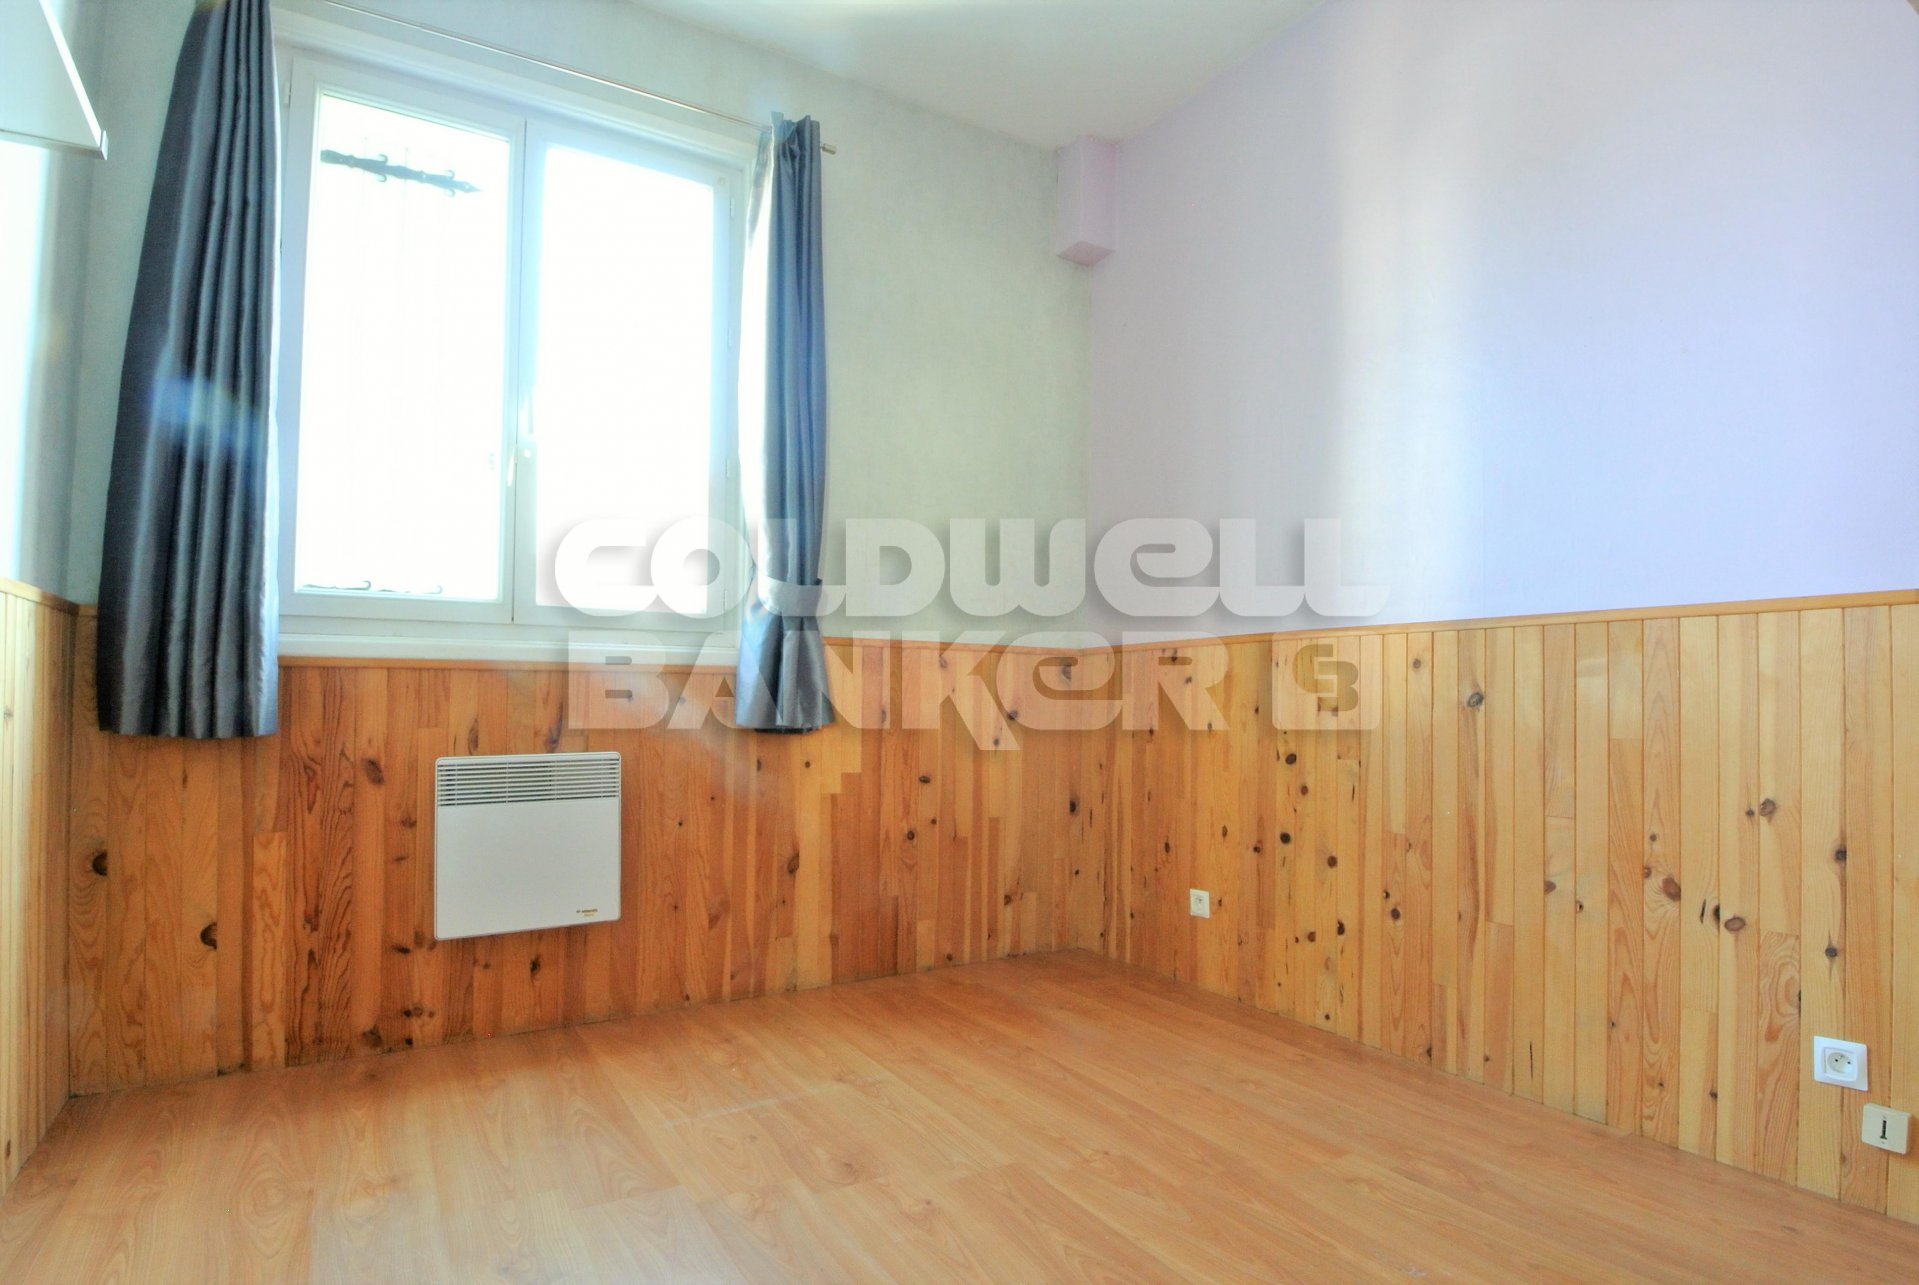 House for Sale (bungalow) in Royan